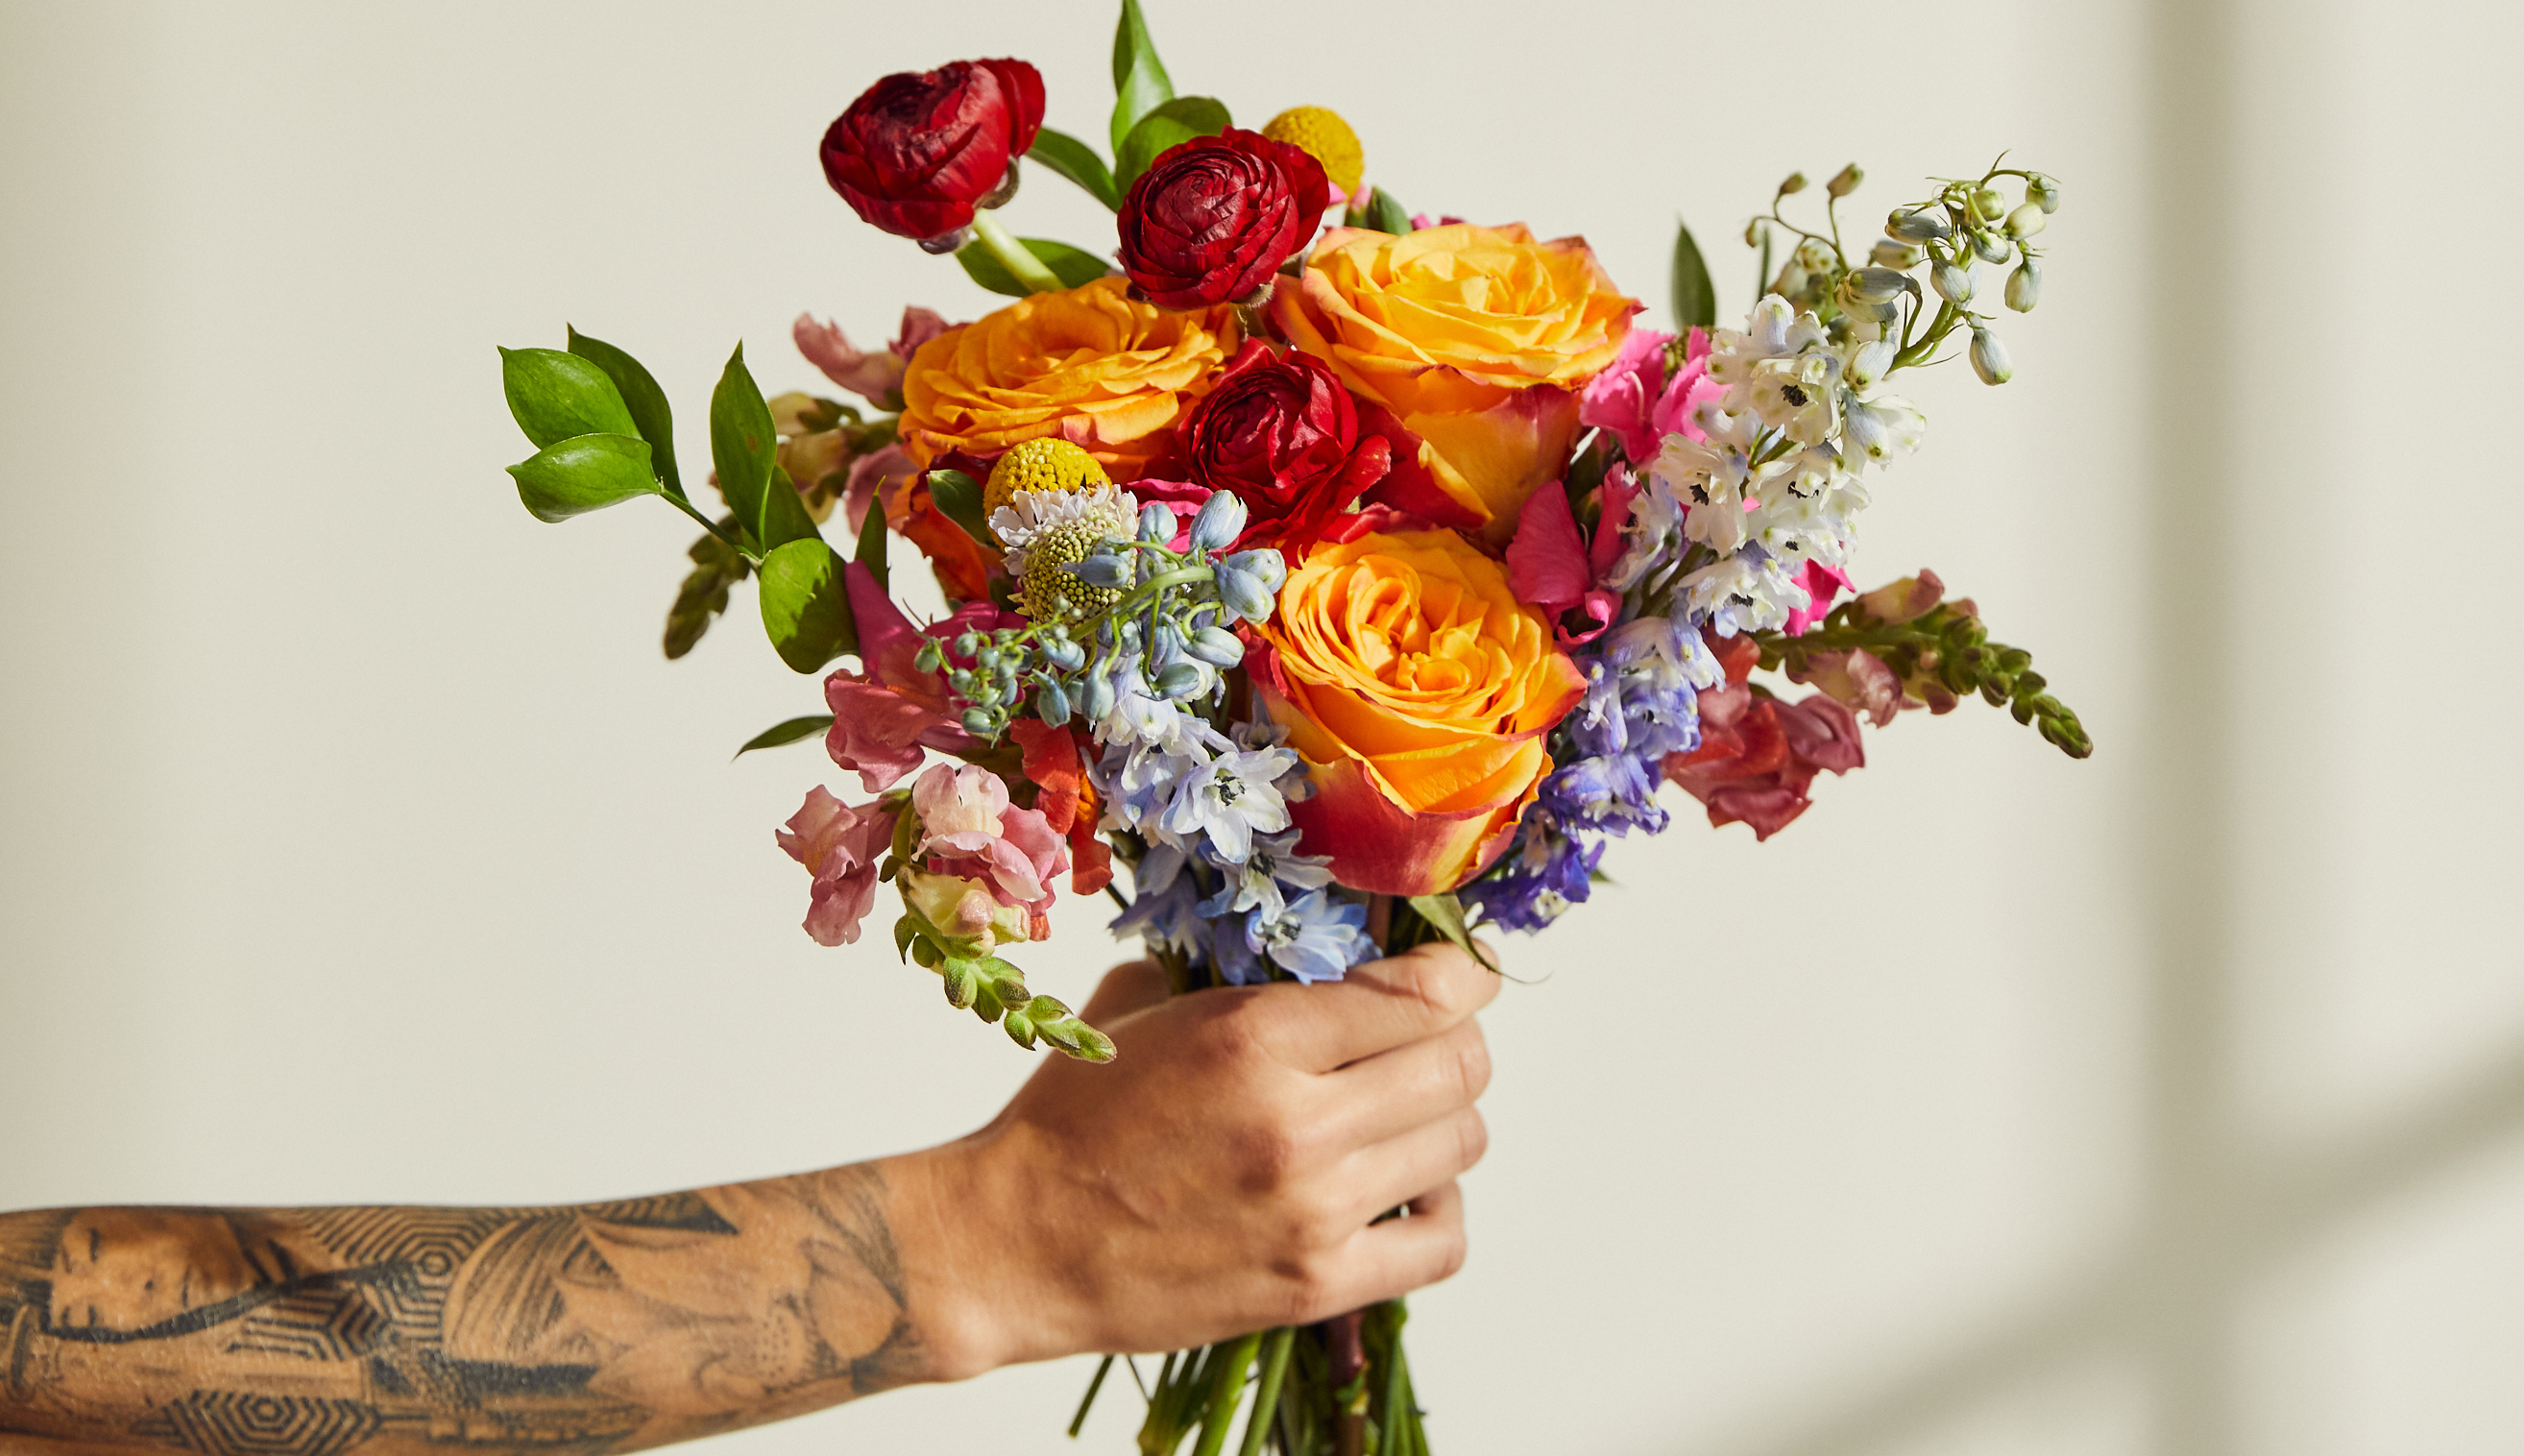 Hand holding rainbow floral bouquet.